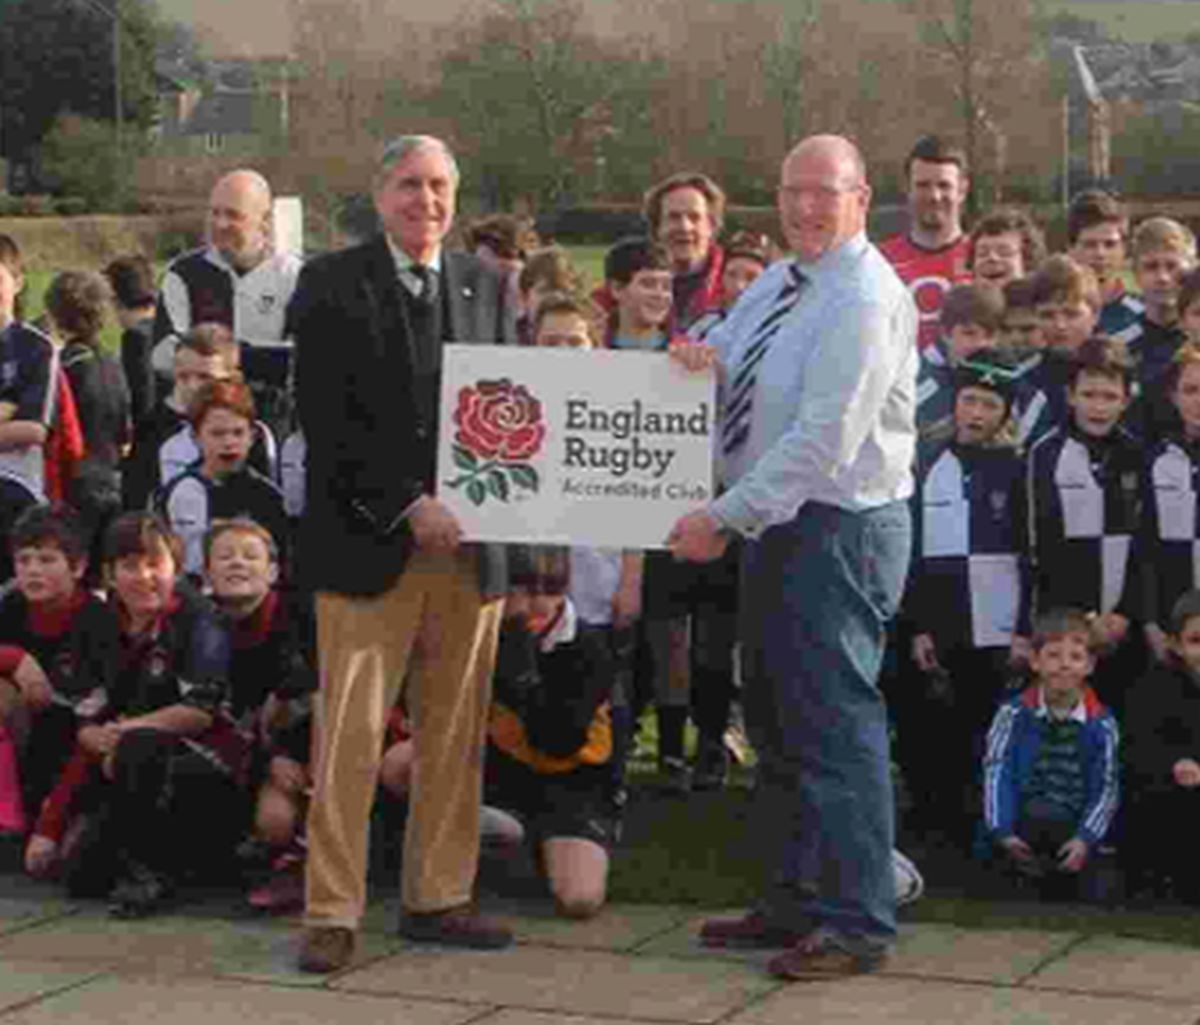 CLUB HONOUR: Dorset & Wilts RFU president John Palmer, left, hands over the Club Accreditation plaque to Bridport RFC's junior chairman Julian Hussey